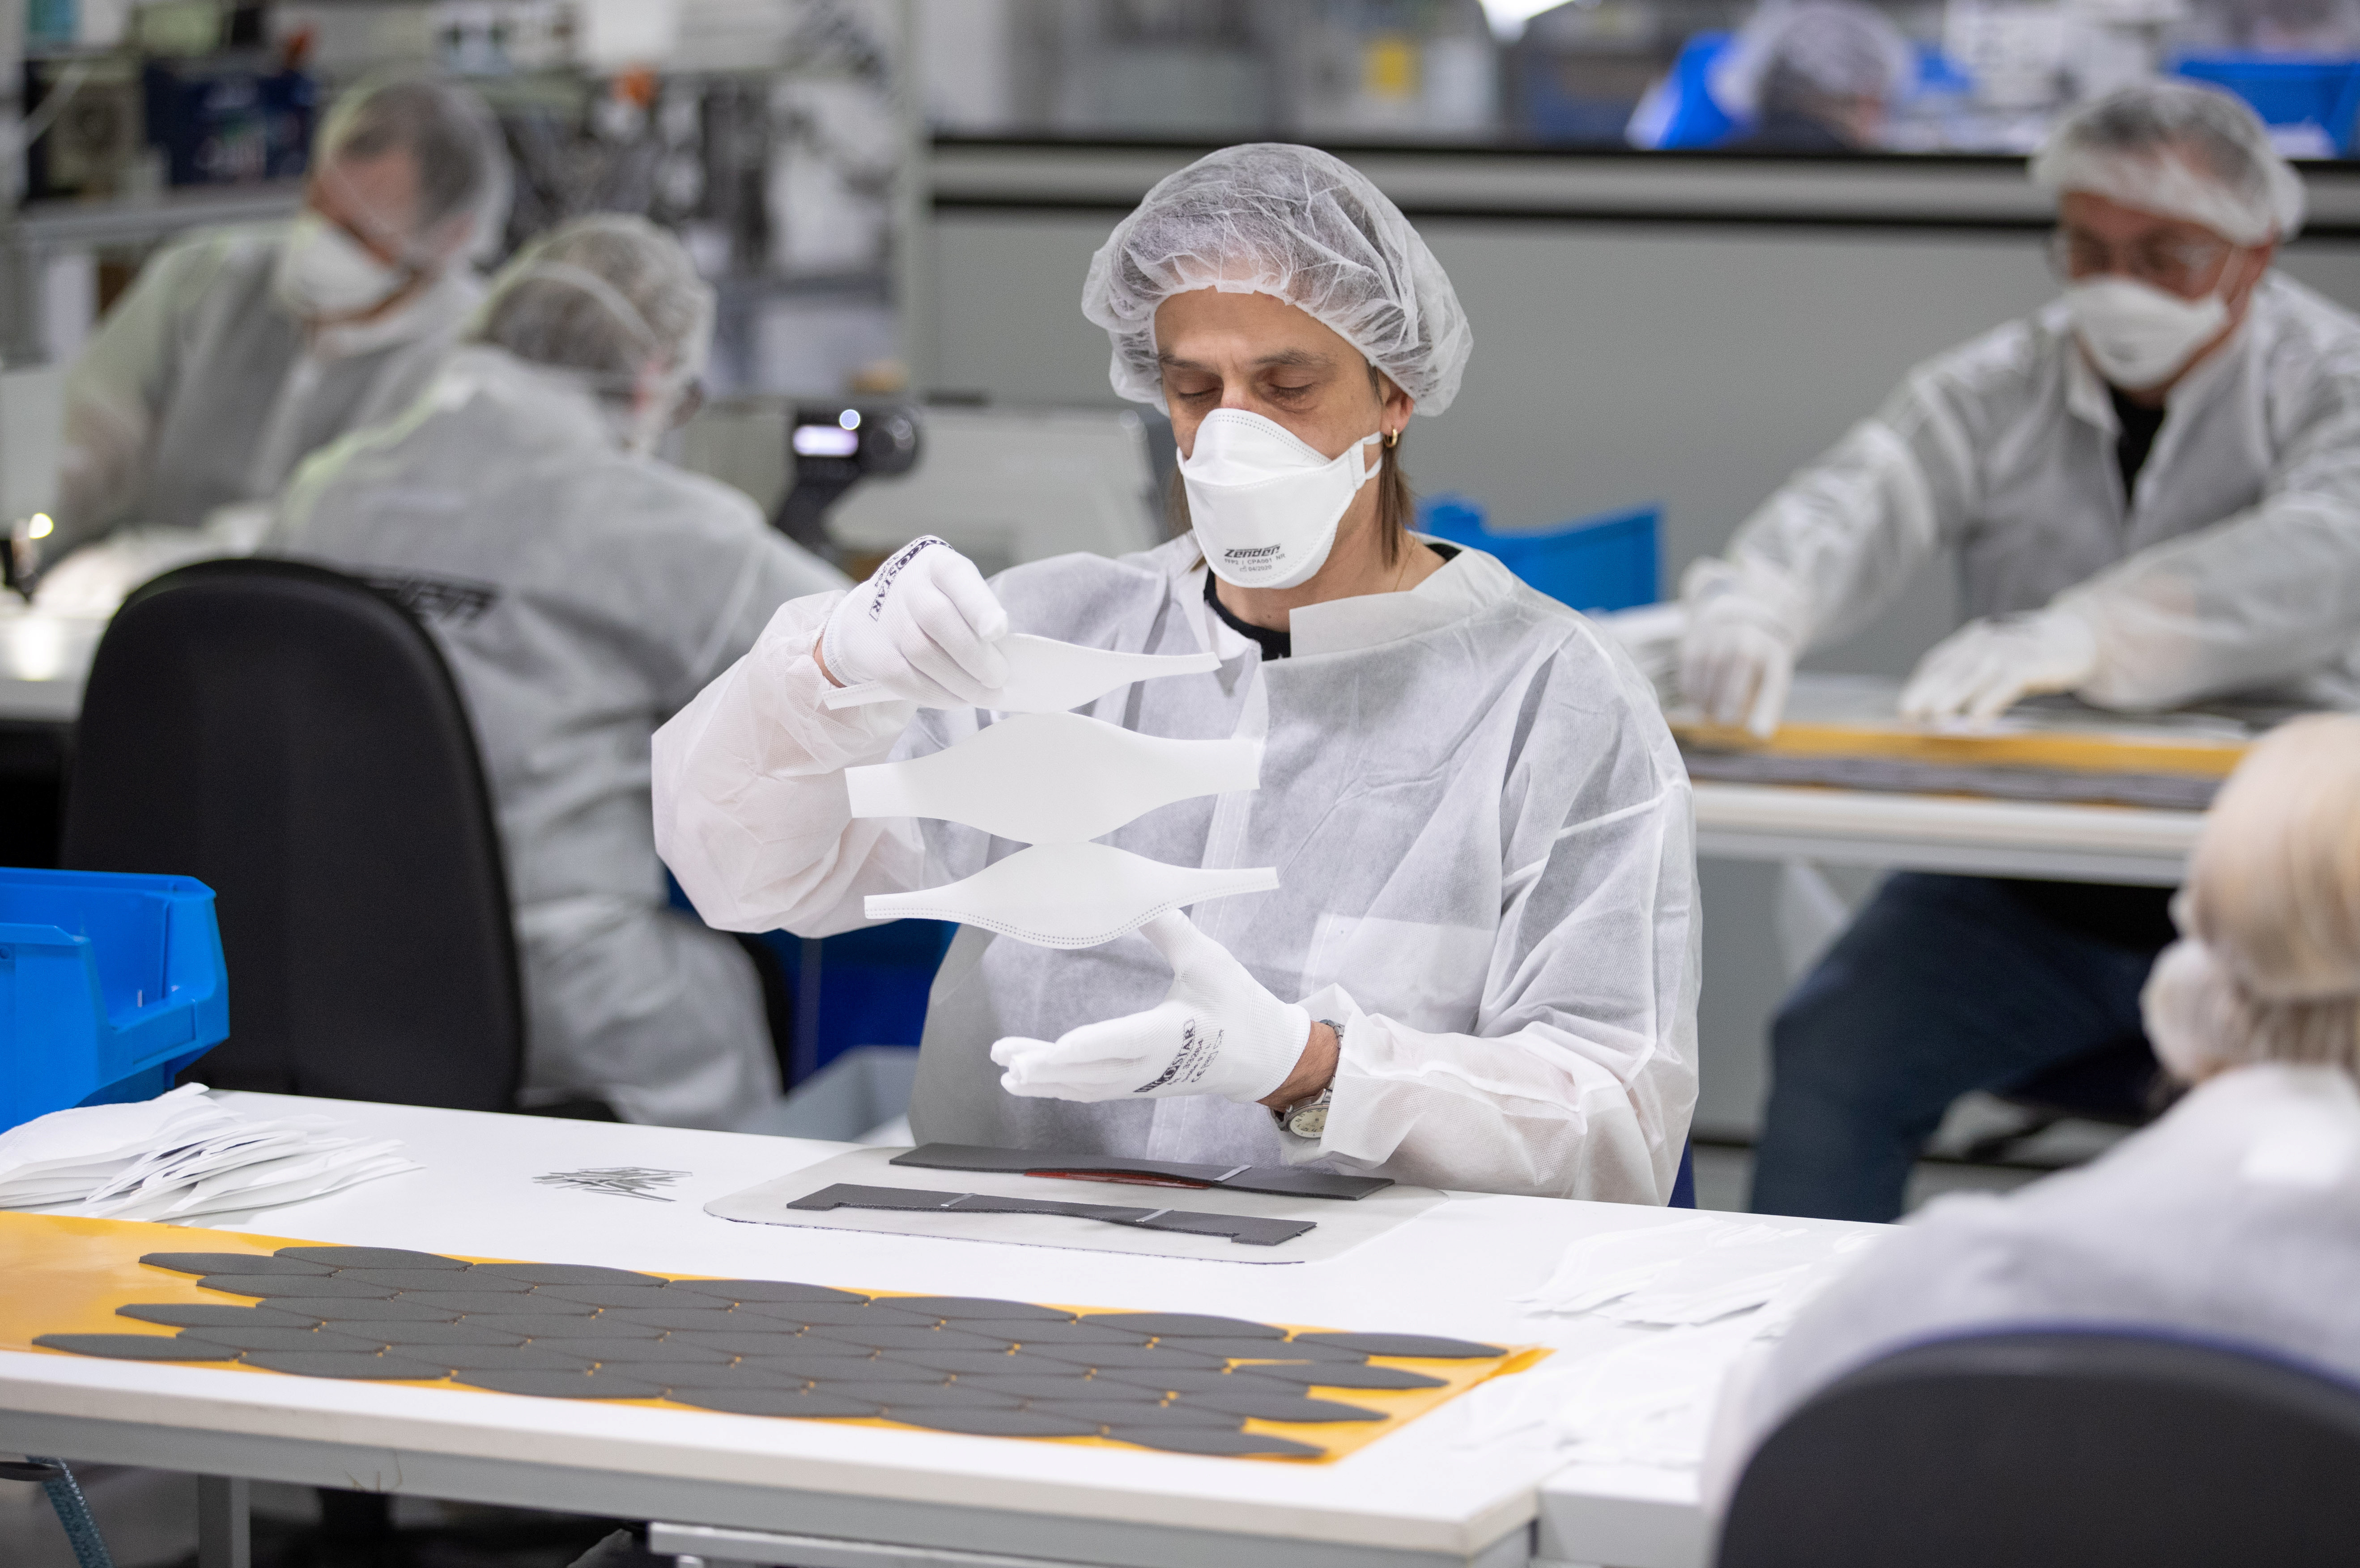 Employees of textile company Zender Germany GmbH, usually an automotive supplier, make protective masks in Osnabrueck, Germany, April 6, 2020, as the spread of the coronavirus disease (COVID-19) continues.      Friso Gentsch/Pool via REUTERS - RC20ZF9Z2HBC